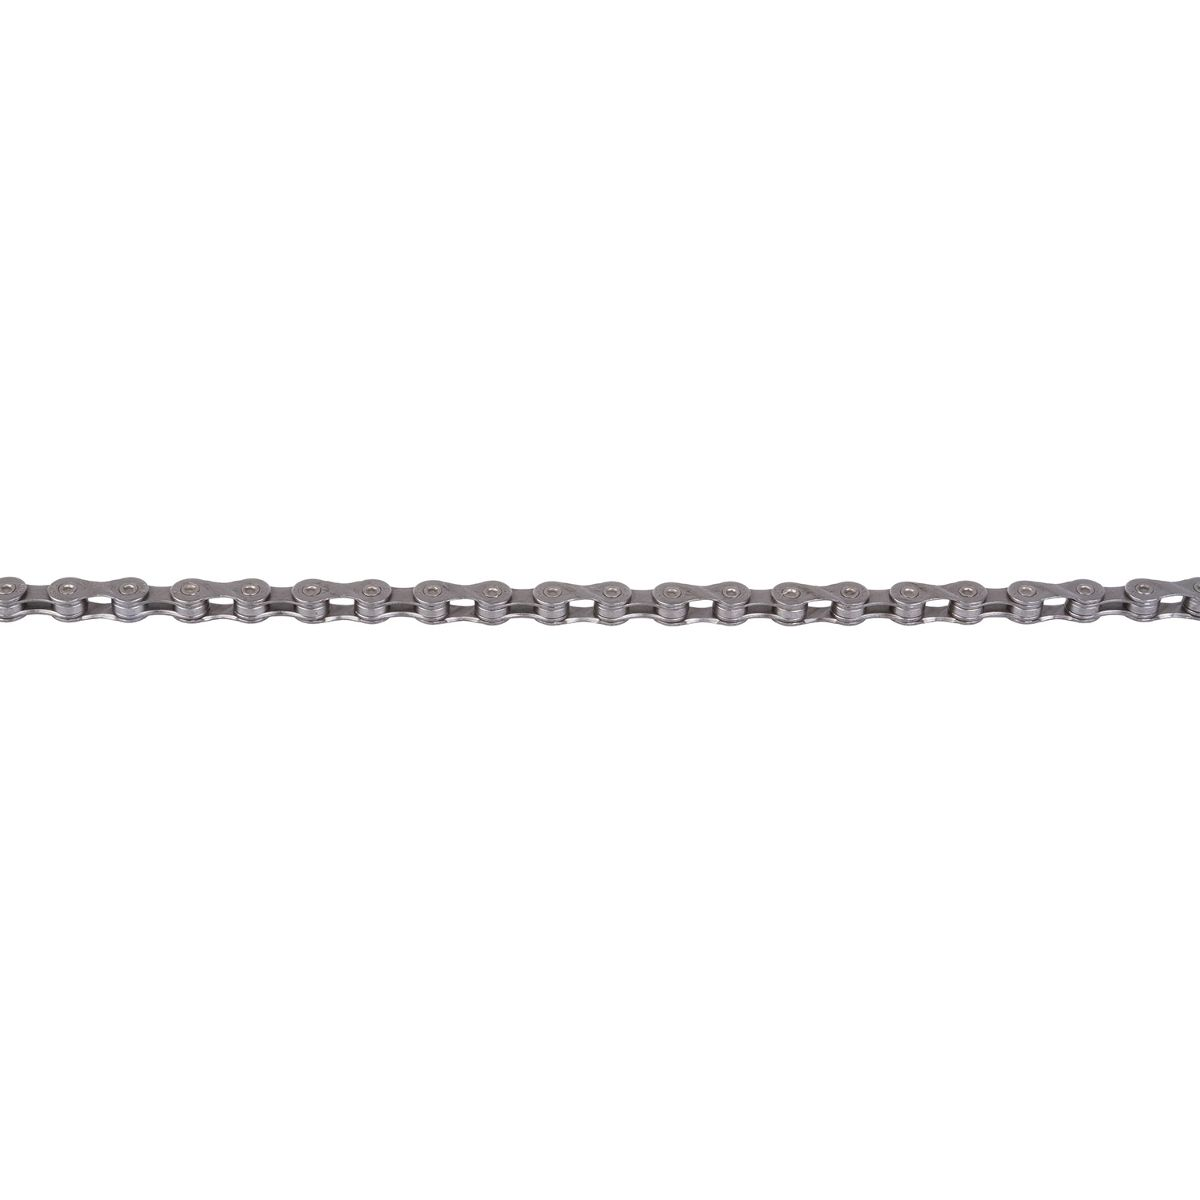 X9 grey 9-speed chain